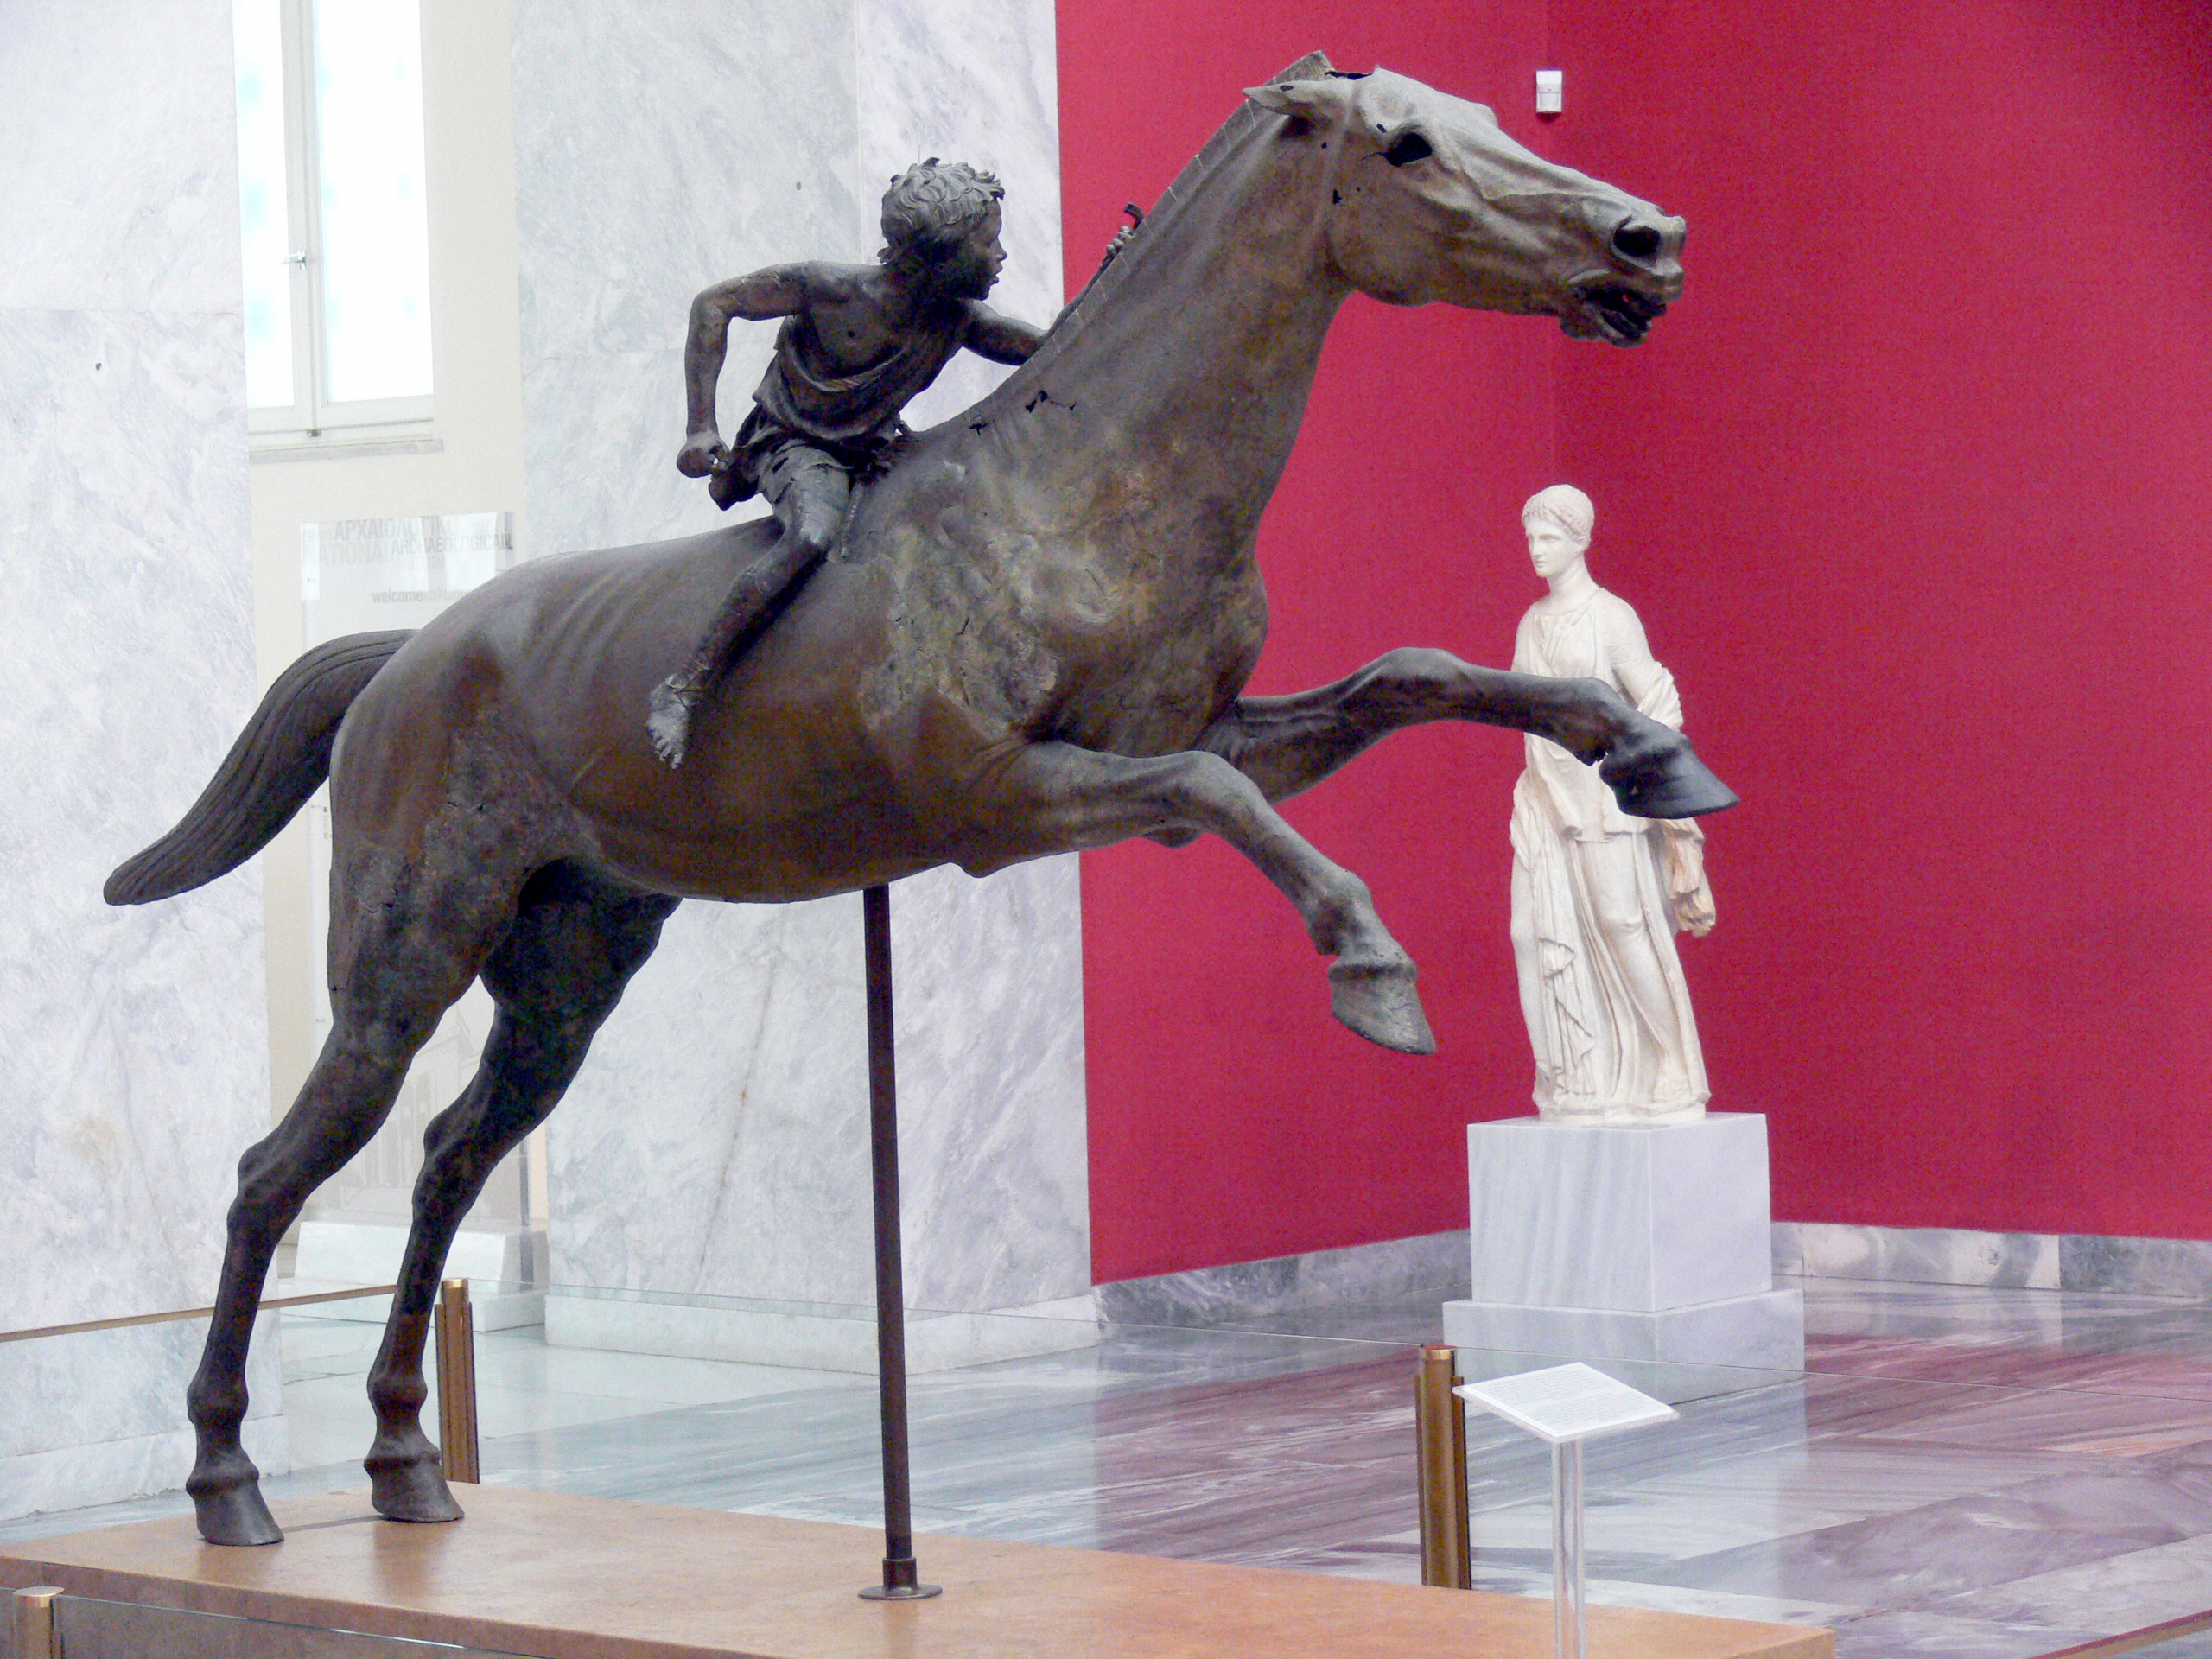 "ca. 150–140 v. Chr., Bronze, 290 cm x 210 cm, Athen, Archäologisches Nationalmuseum, Inv.-Nr. X 15177.<br>Quelle: <a href=""https://commons.wikimedia.org/wiki/File:07Jockey01.jpg"">User:Fingalo / Wikimedia Commons</a>